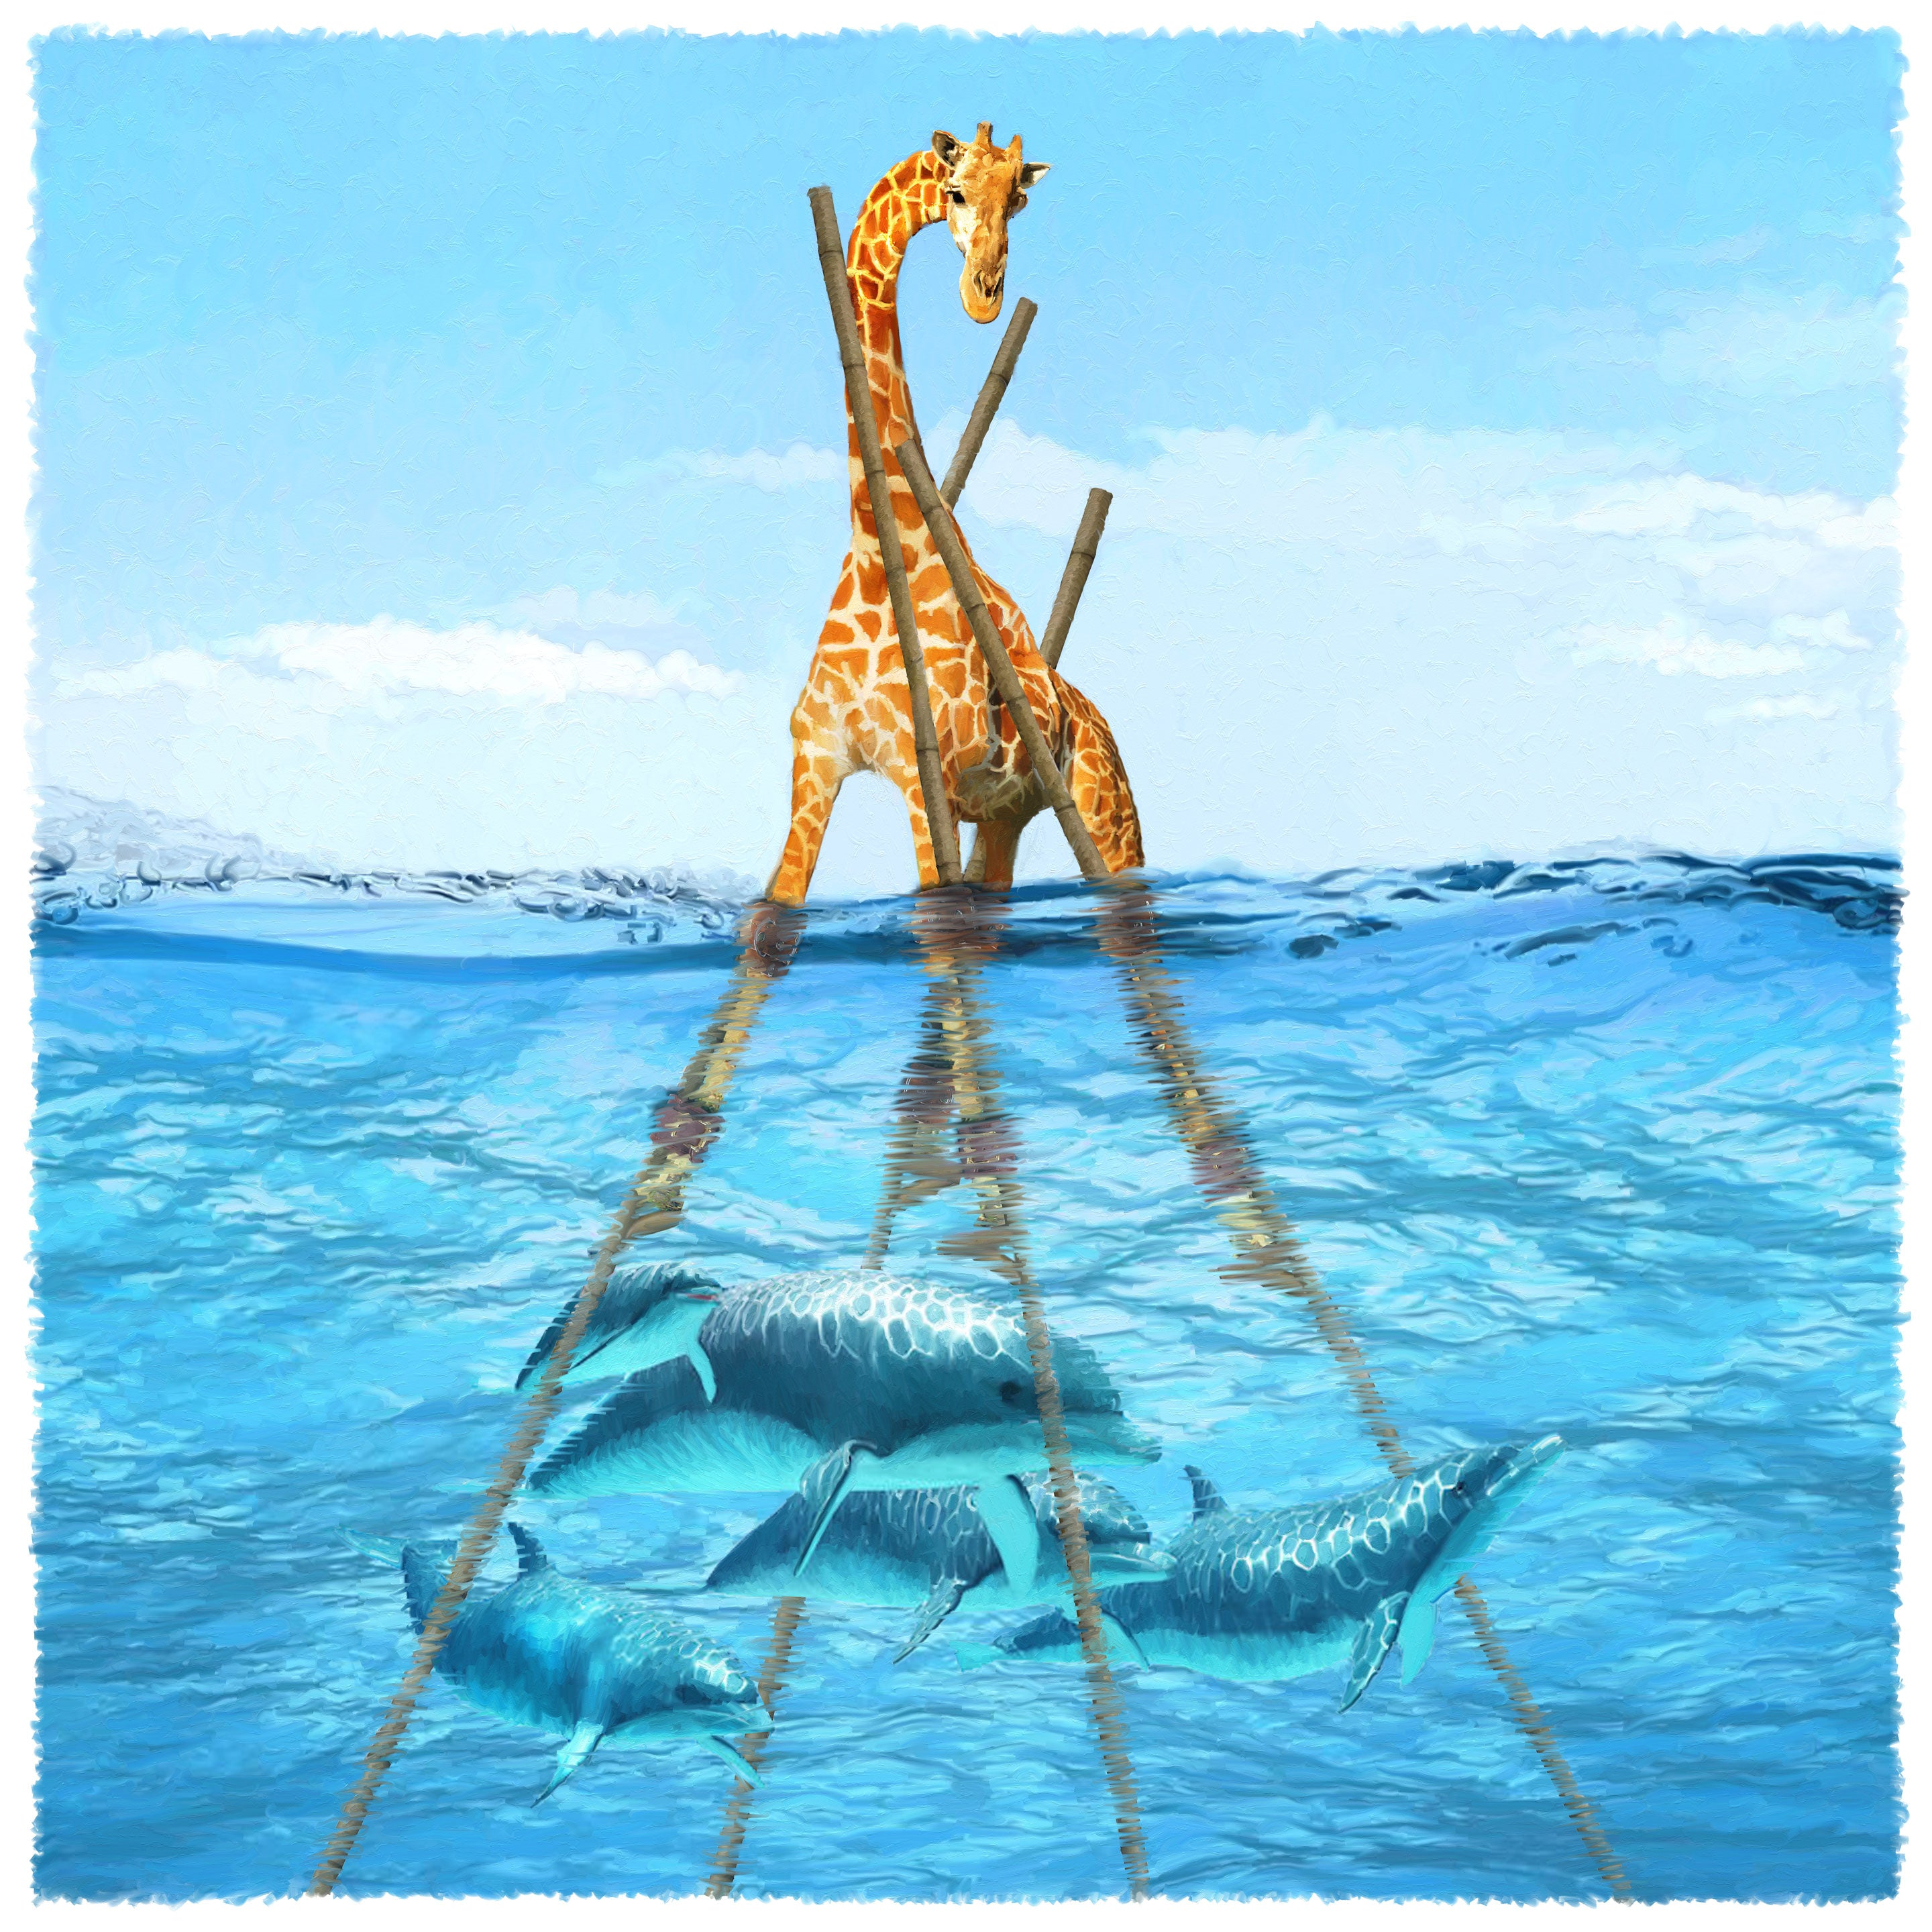 0.5 The Giraffe and the Dolphins